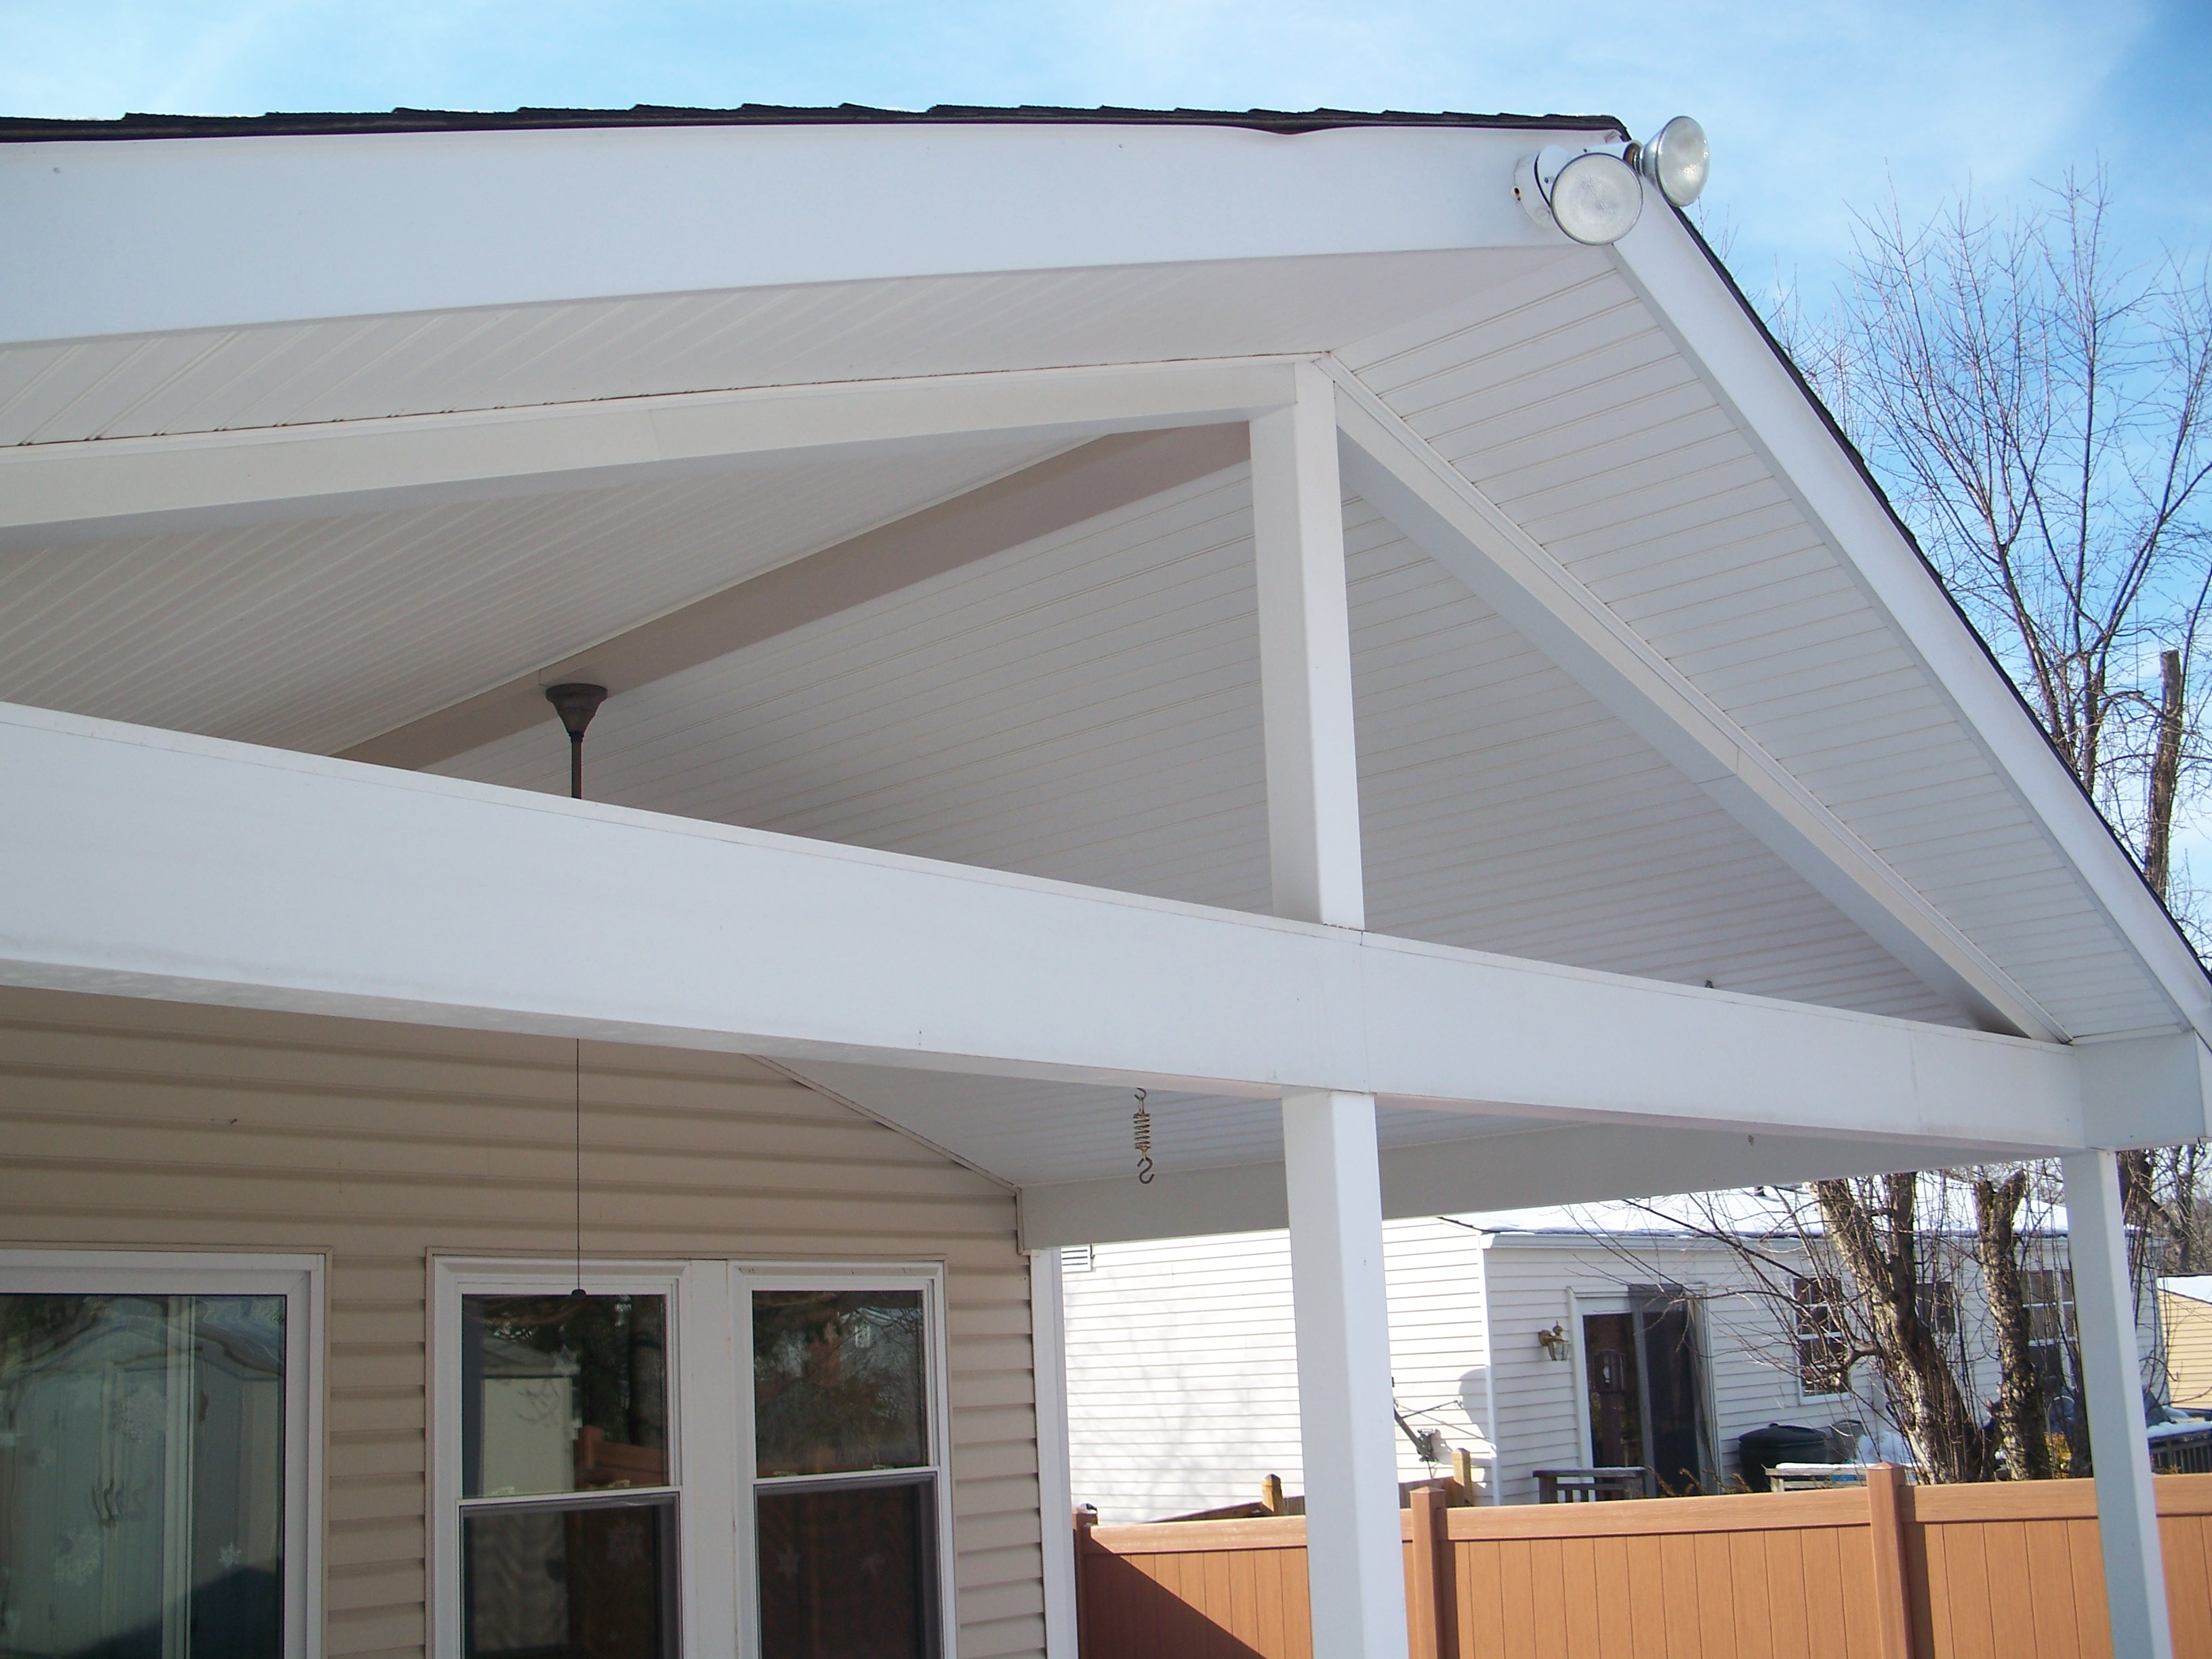 A Porch Roof Design To Keep The Elements Out But Let The Sunlight In Greg Felix Construction